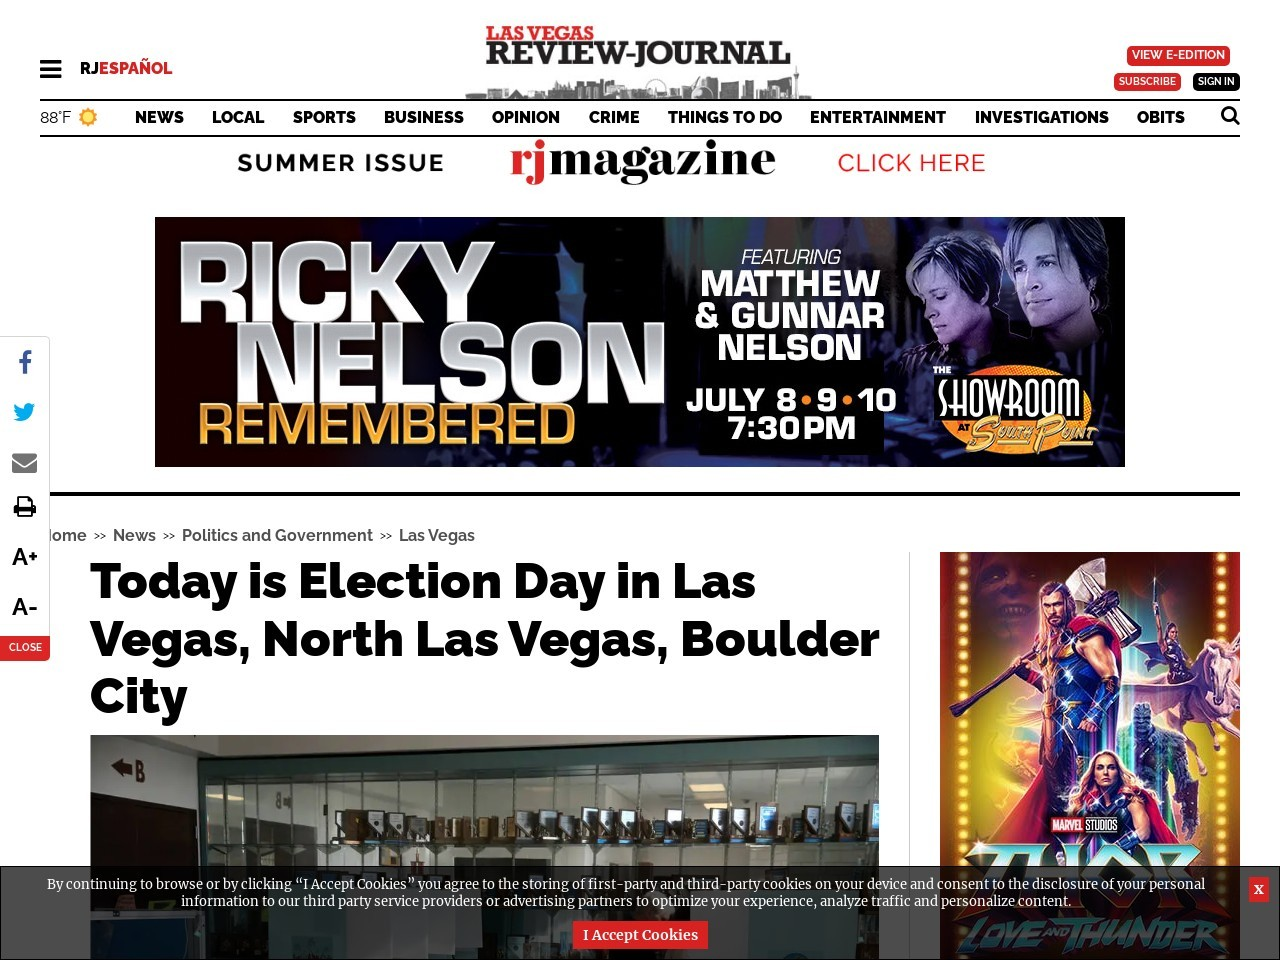 Tuesday is Election Day in Las Vegas, North Las Vegas and Boulder City